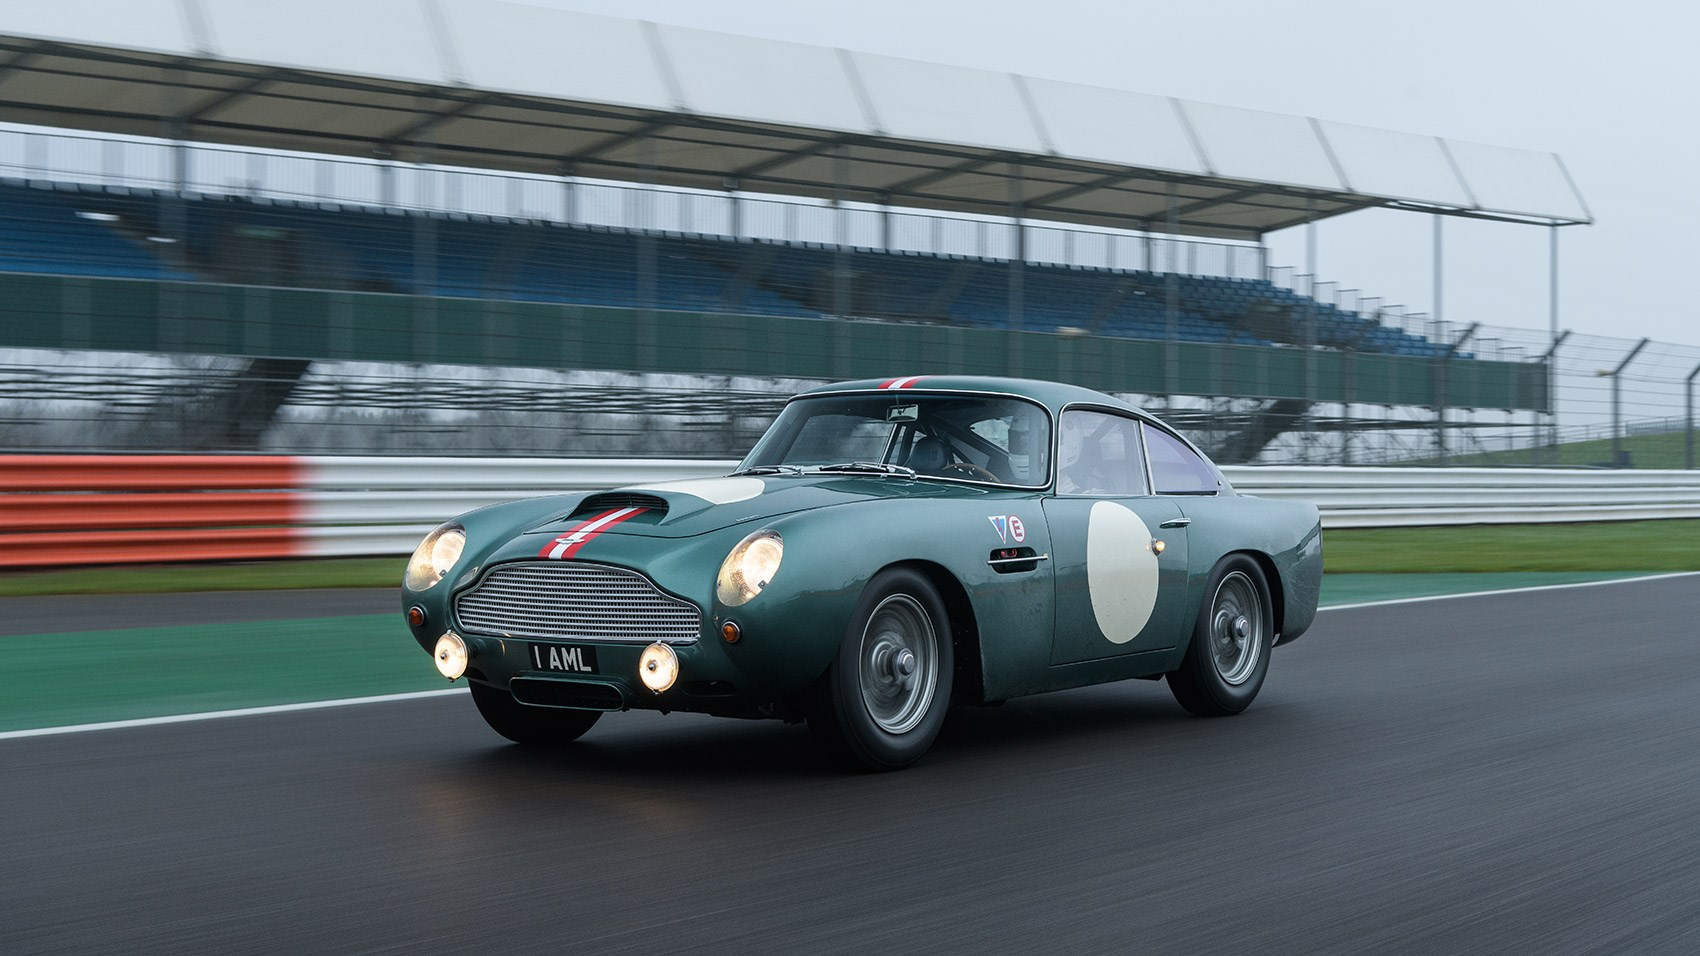 ... Back to the future: Aston Martin sold all 25 DB4 GTs in no time